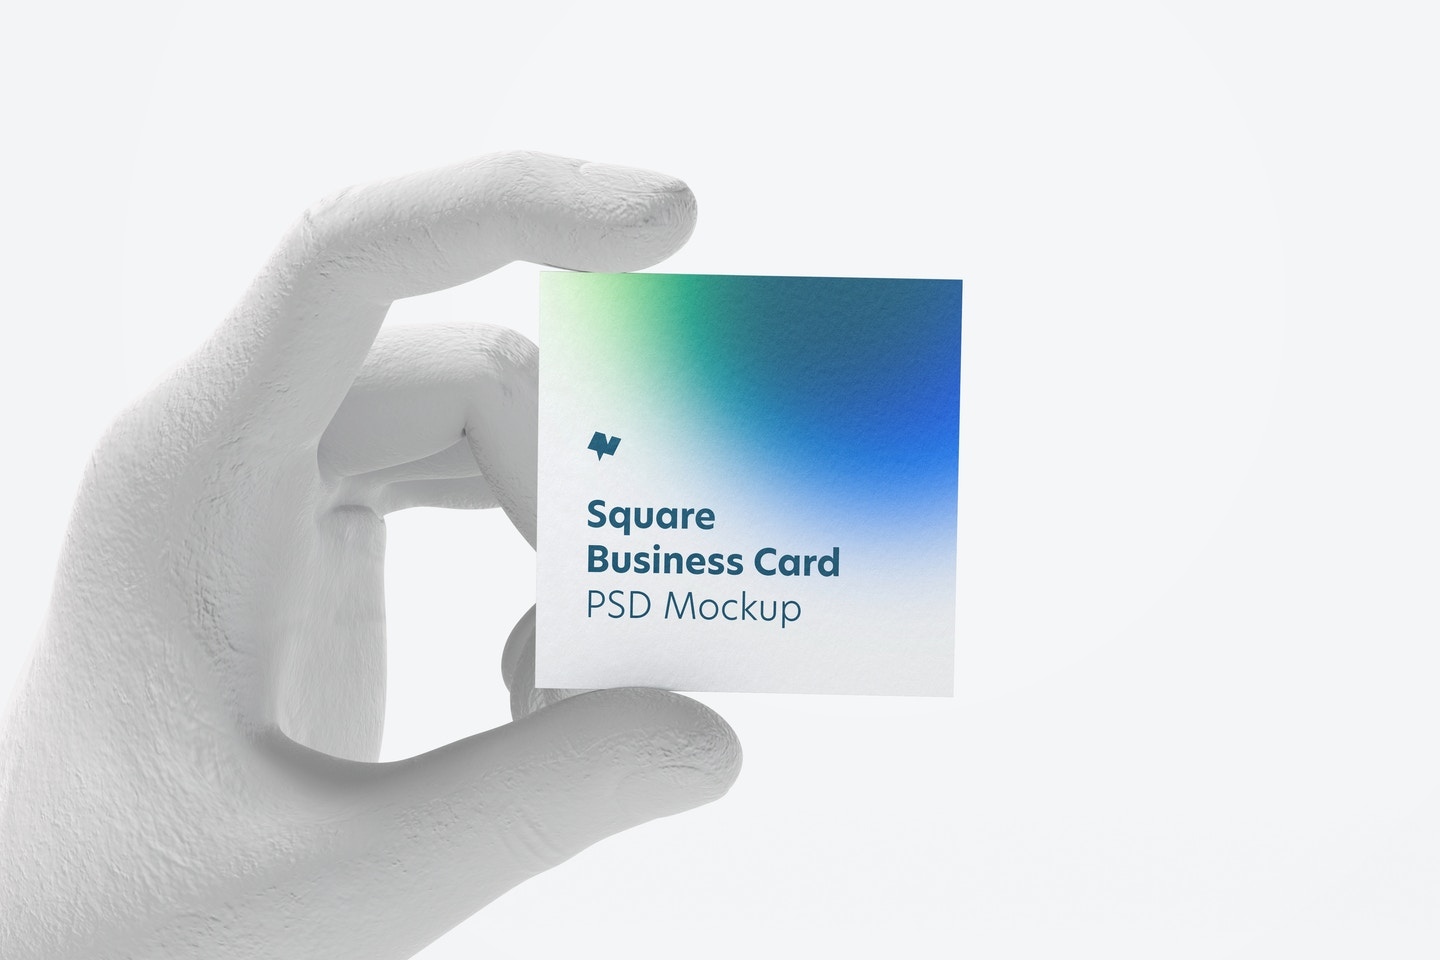 Square Business Card with Hand Mockup